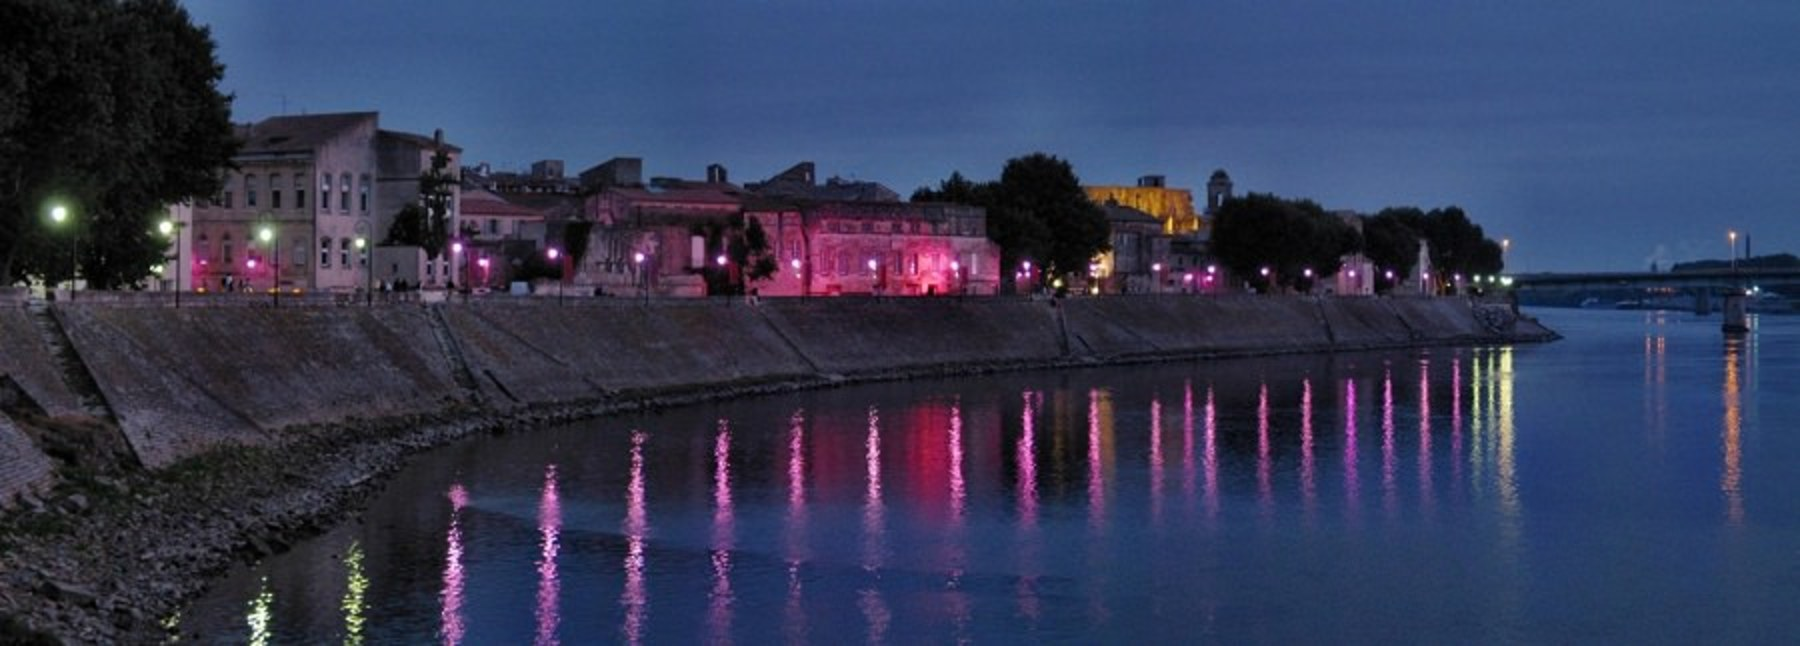 Content Image: Current view of Rhone in Night time. Fair Use